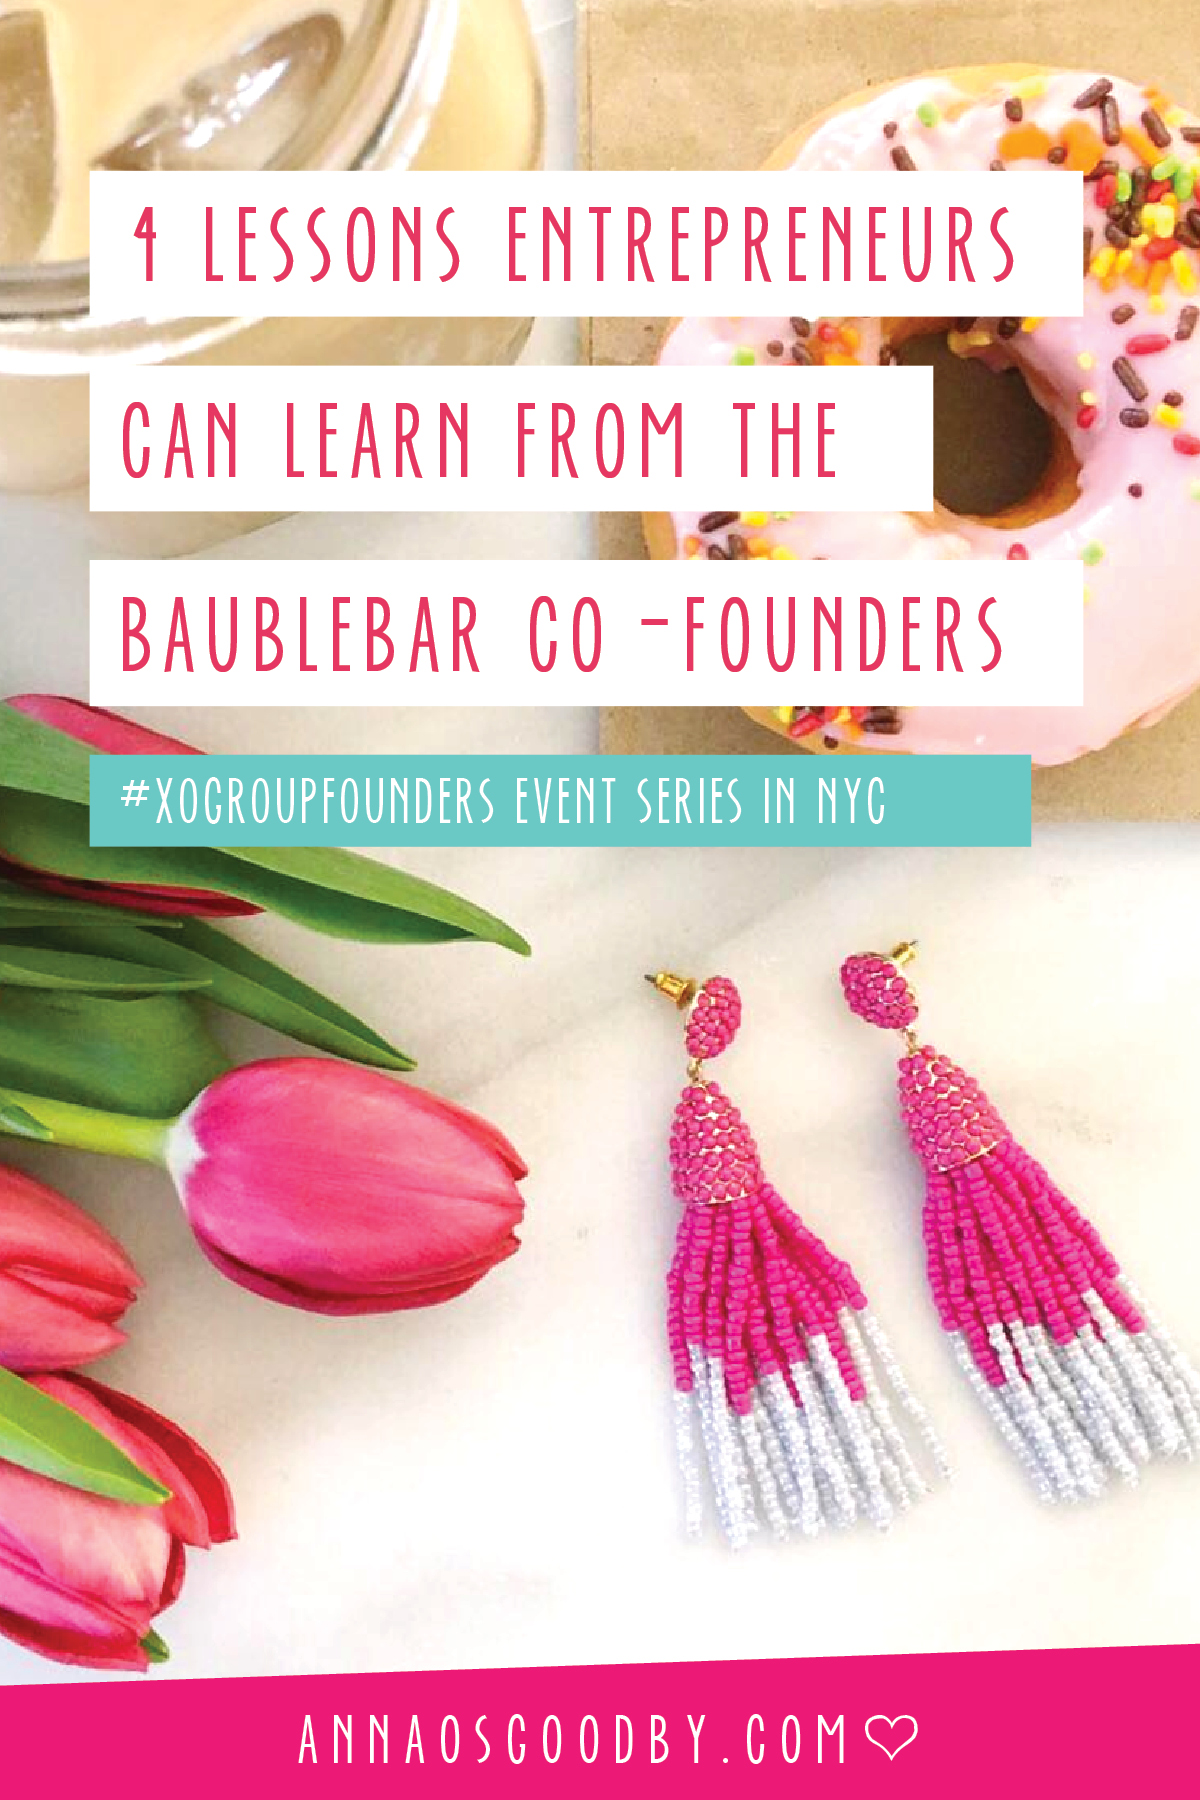 Anna Osgoodby Life + Design : 4 Lessons Entrepreneurs Can Learn From the BaubleBar Co-Founders